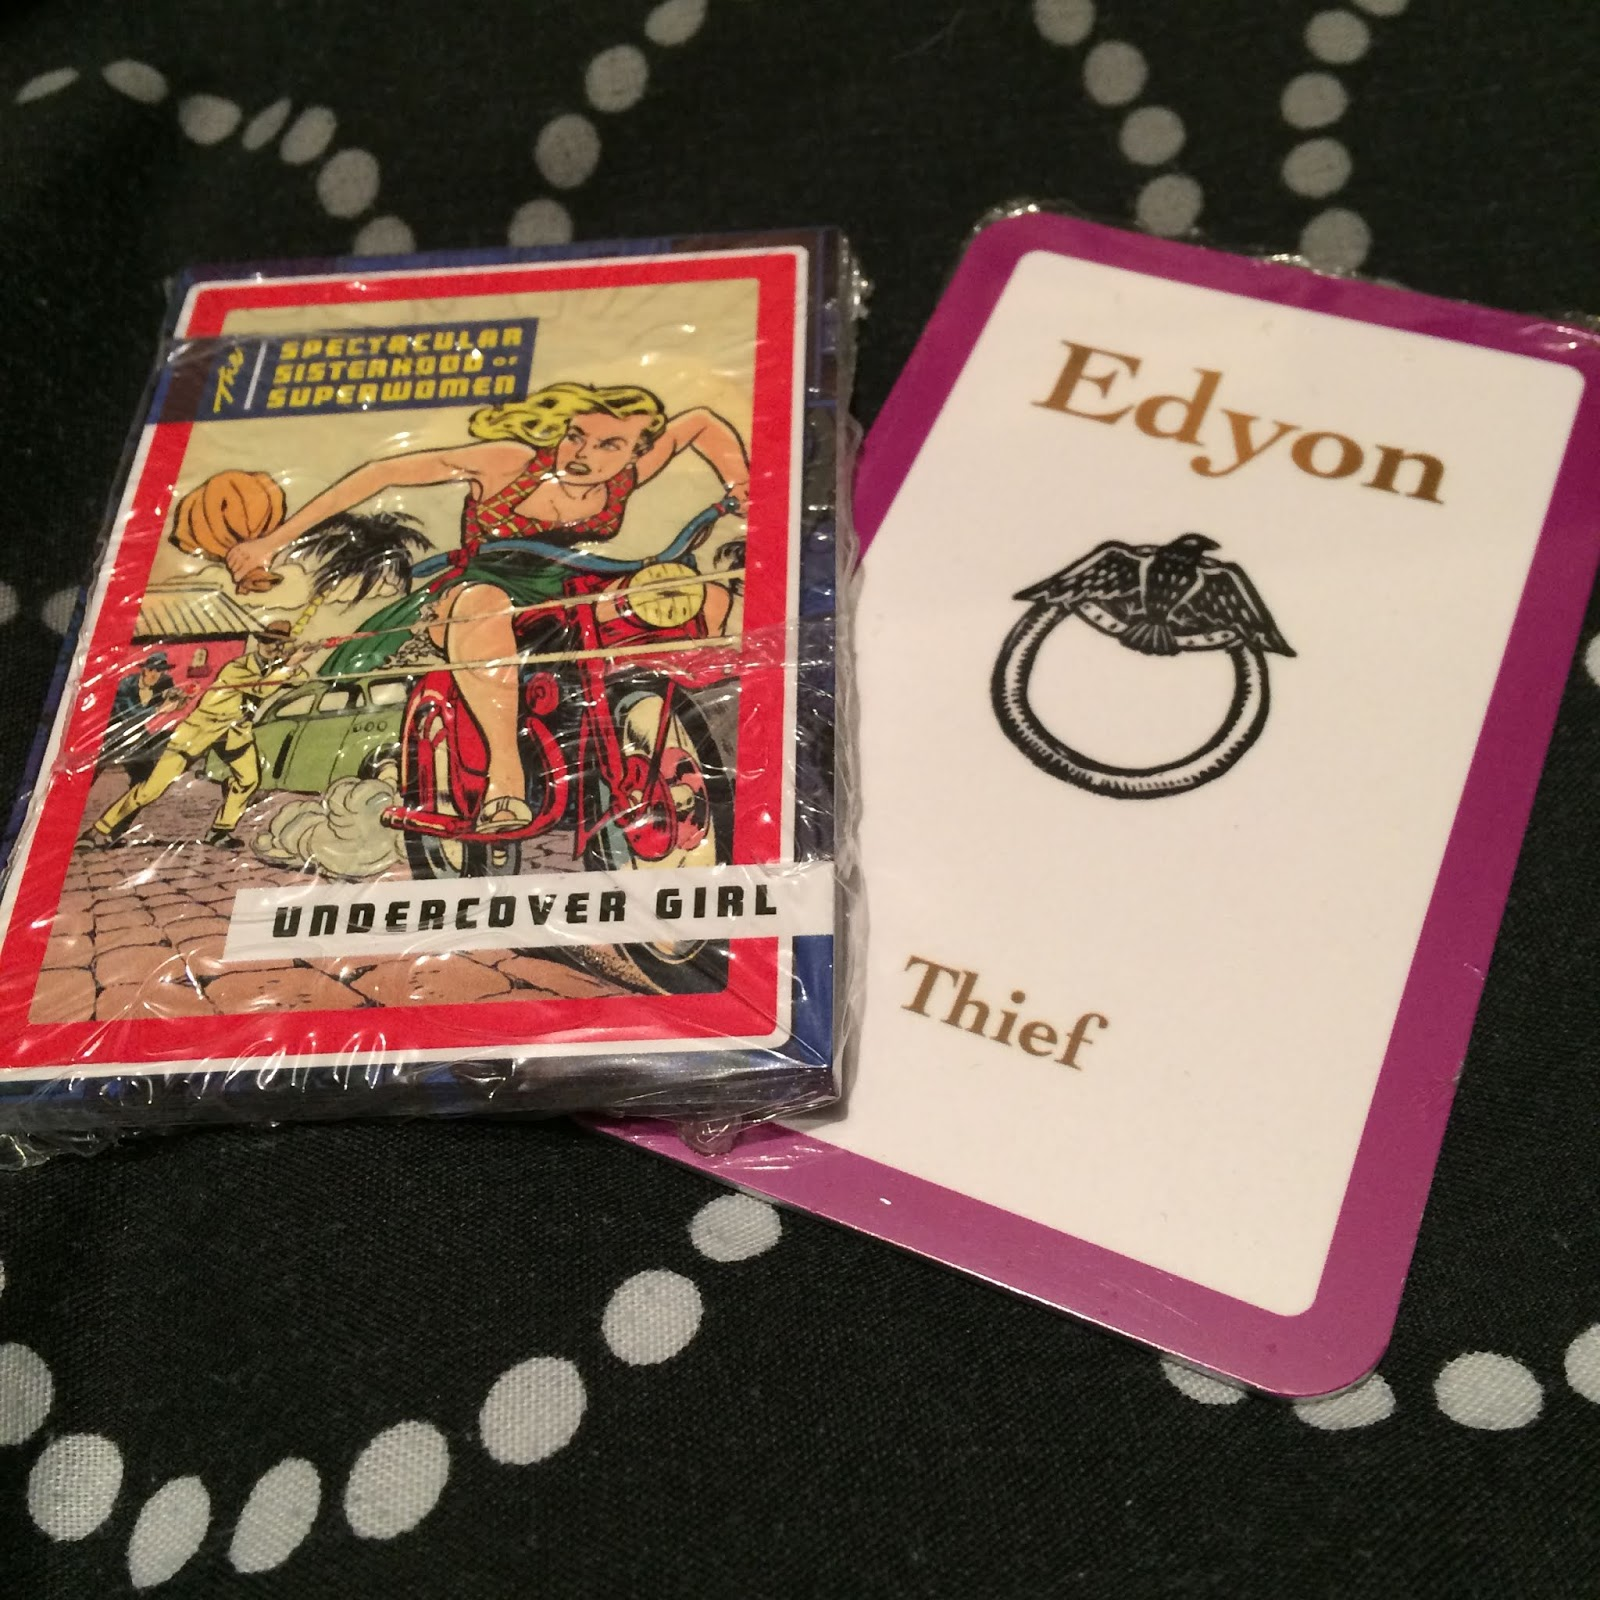 Trading cards for The Spectacular Sisterhood of Superwomen and Smoke Thieves